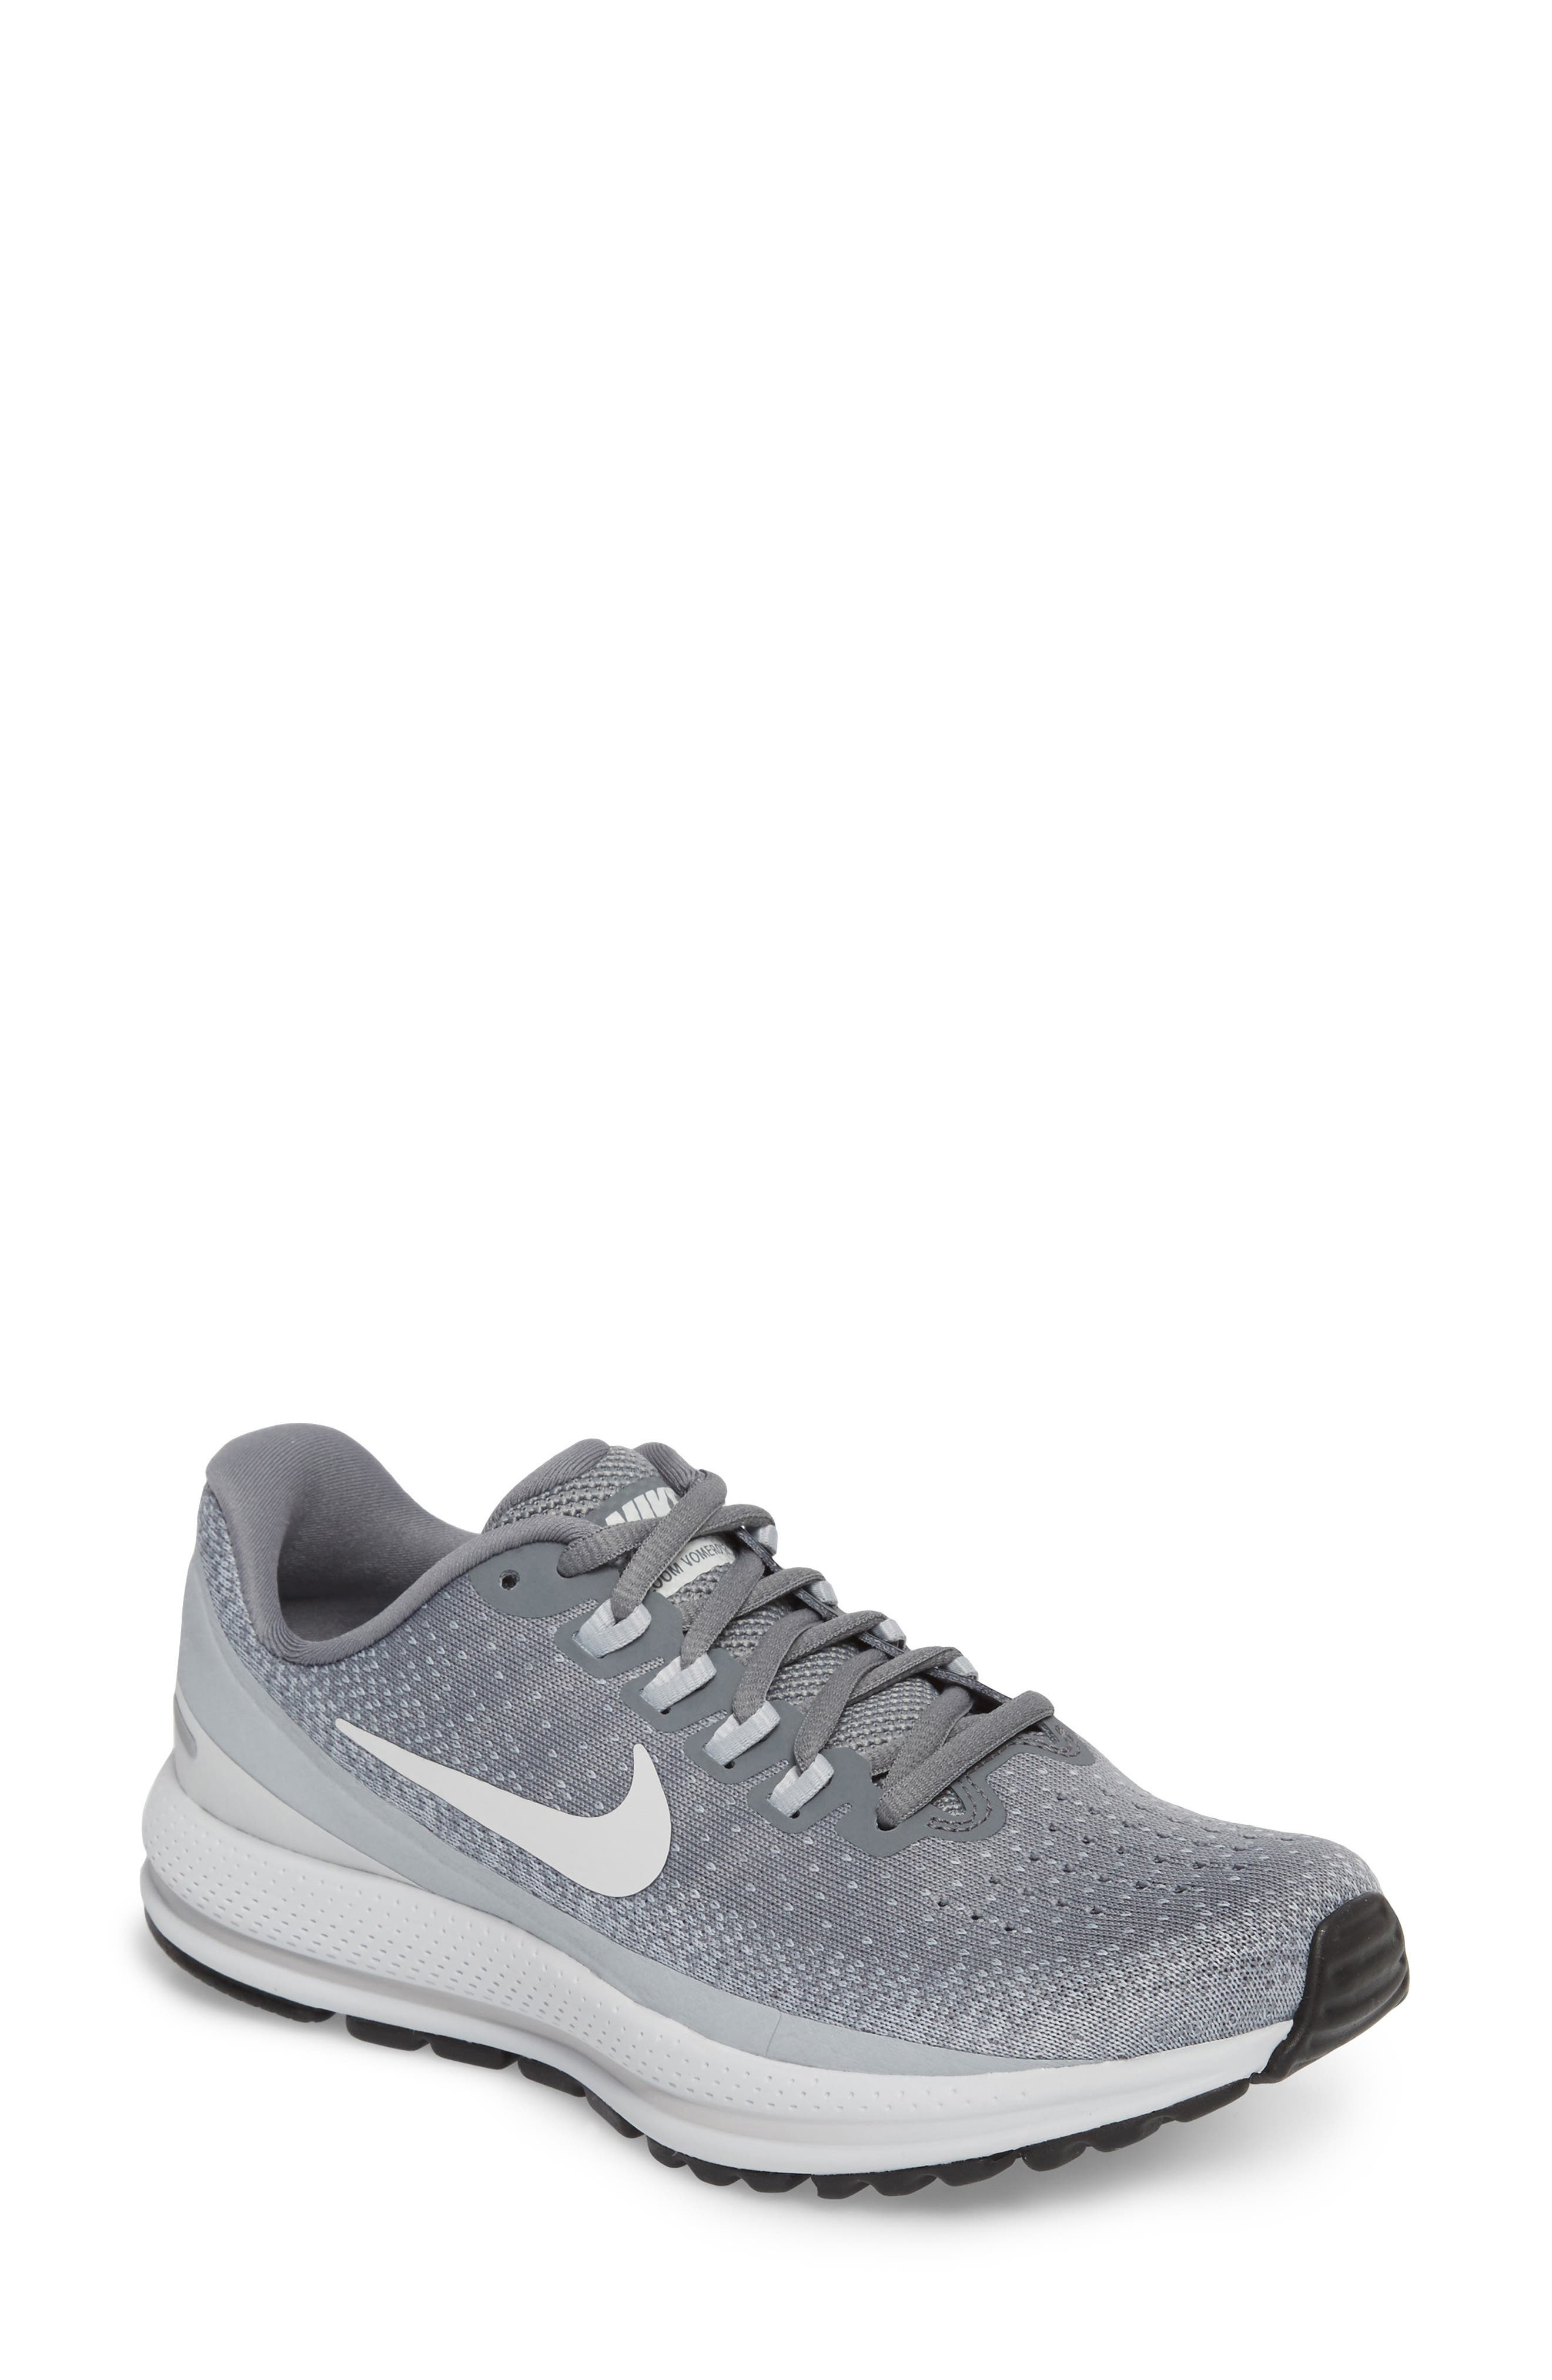 Air Zoom Vomero 13 Running Shoe,                         Main,                         color, COOL GREY/ PURE PLATINUM